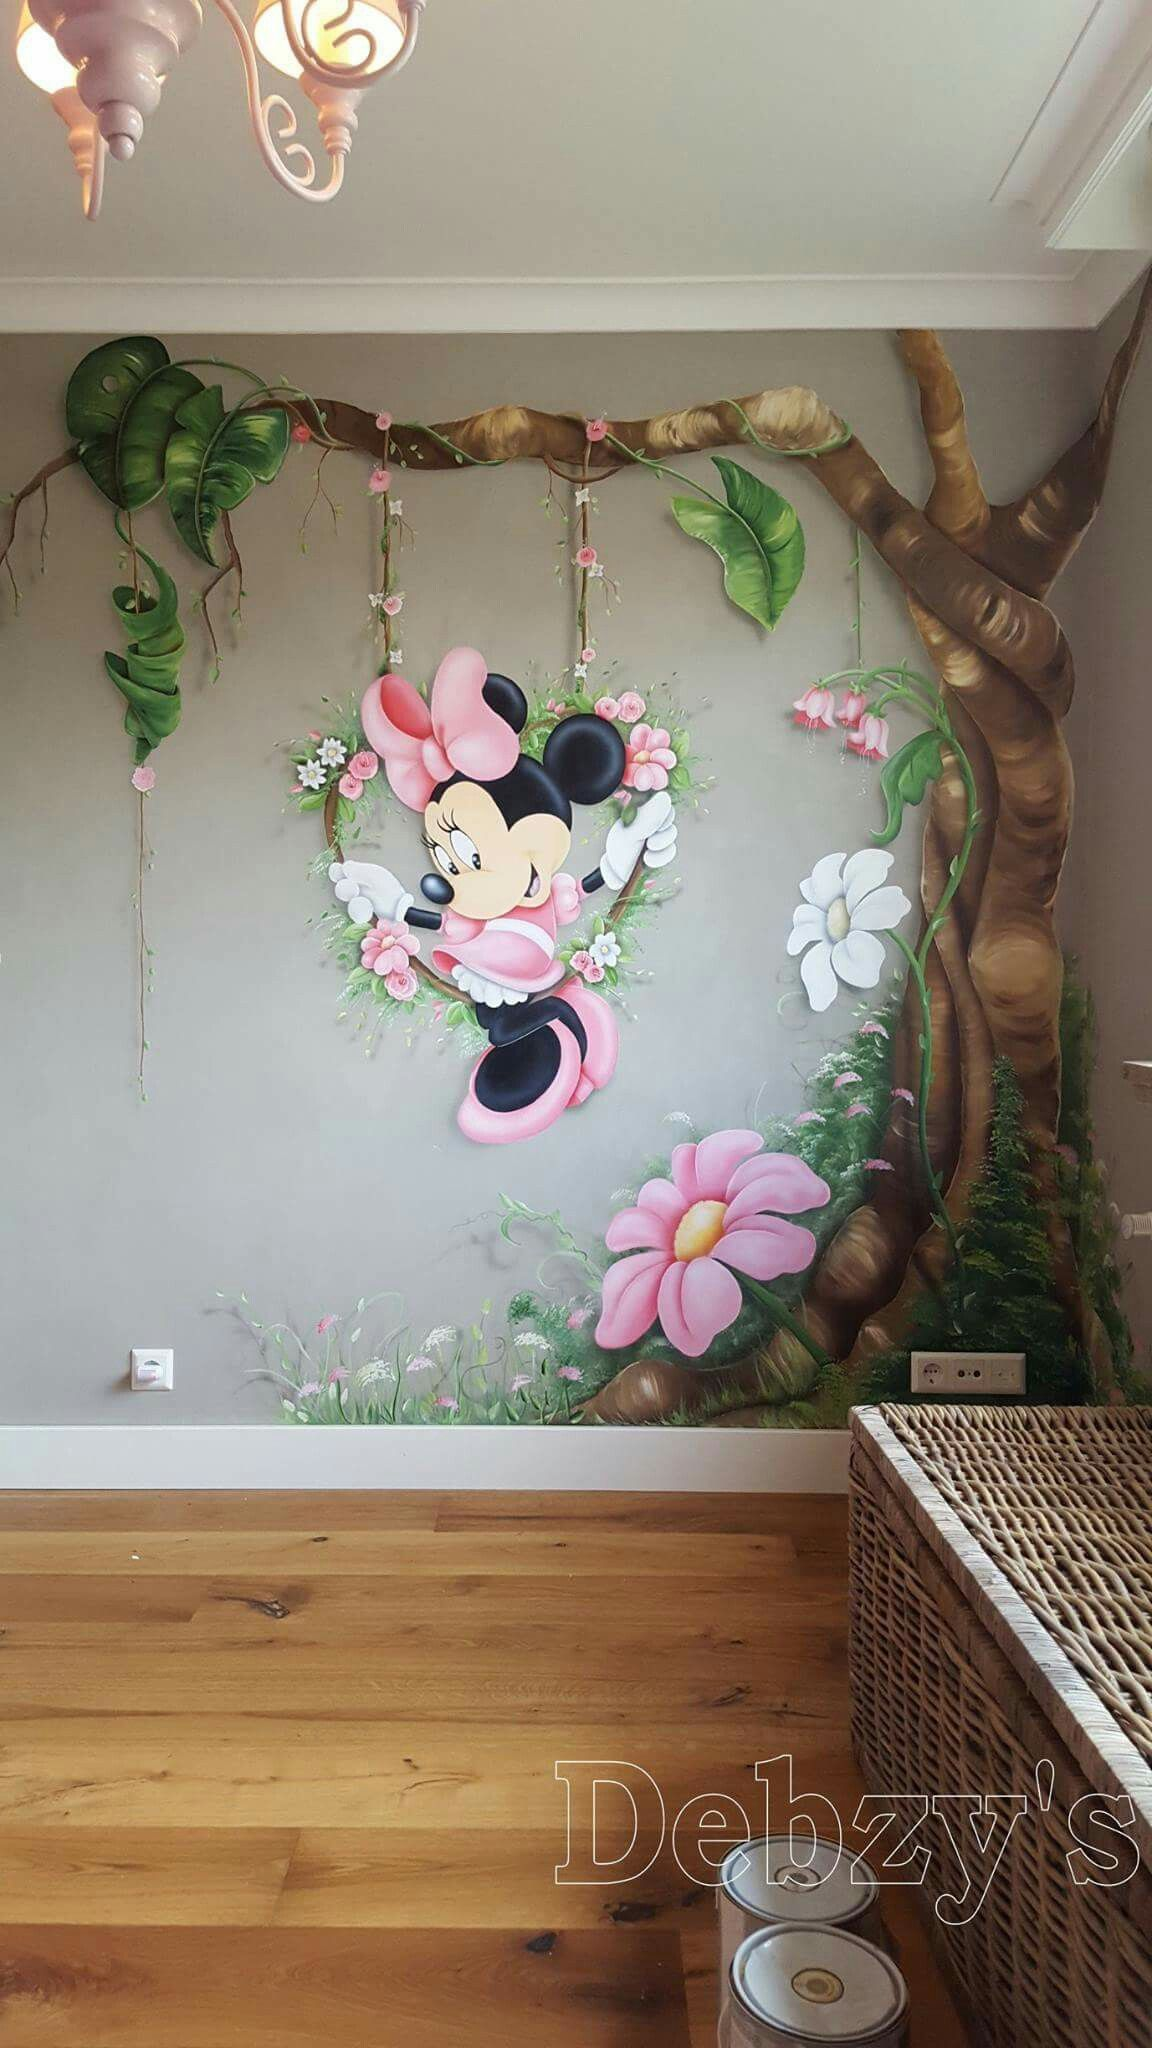 Fototapete Kinderzimmer Minnie Mouse Minnie Mouse Muurschildering Kinderzimmer In 2019